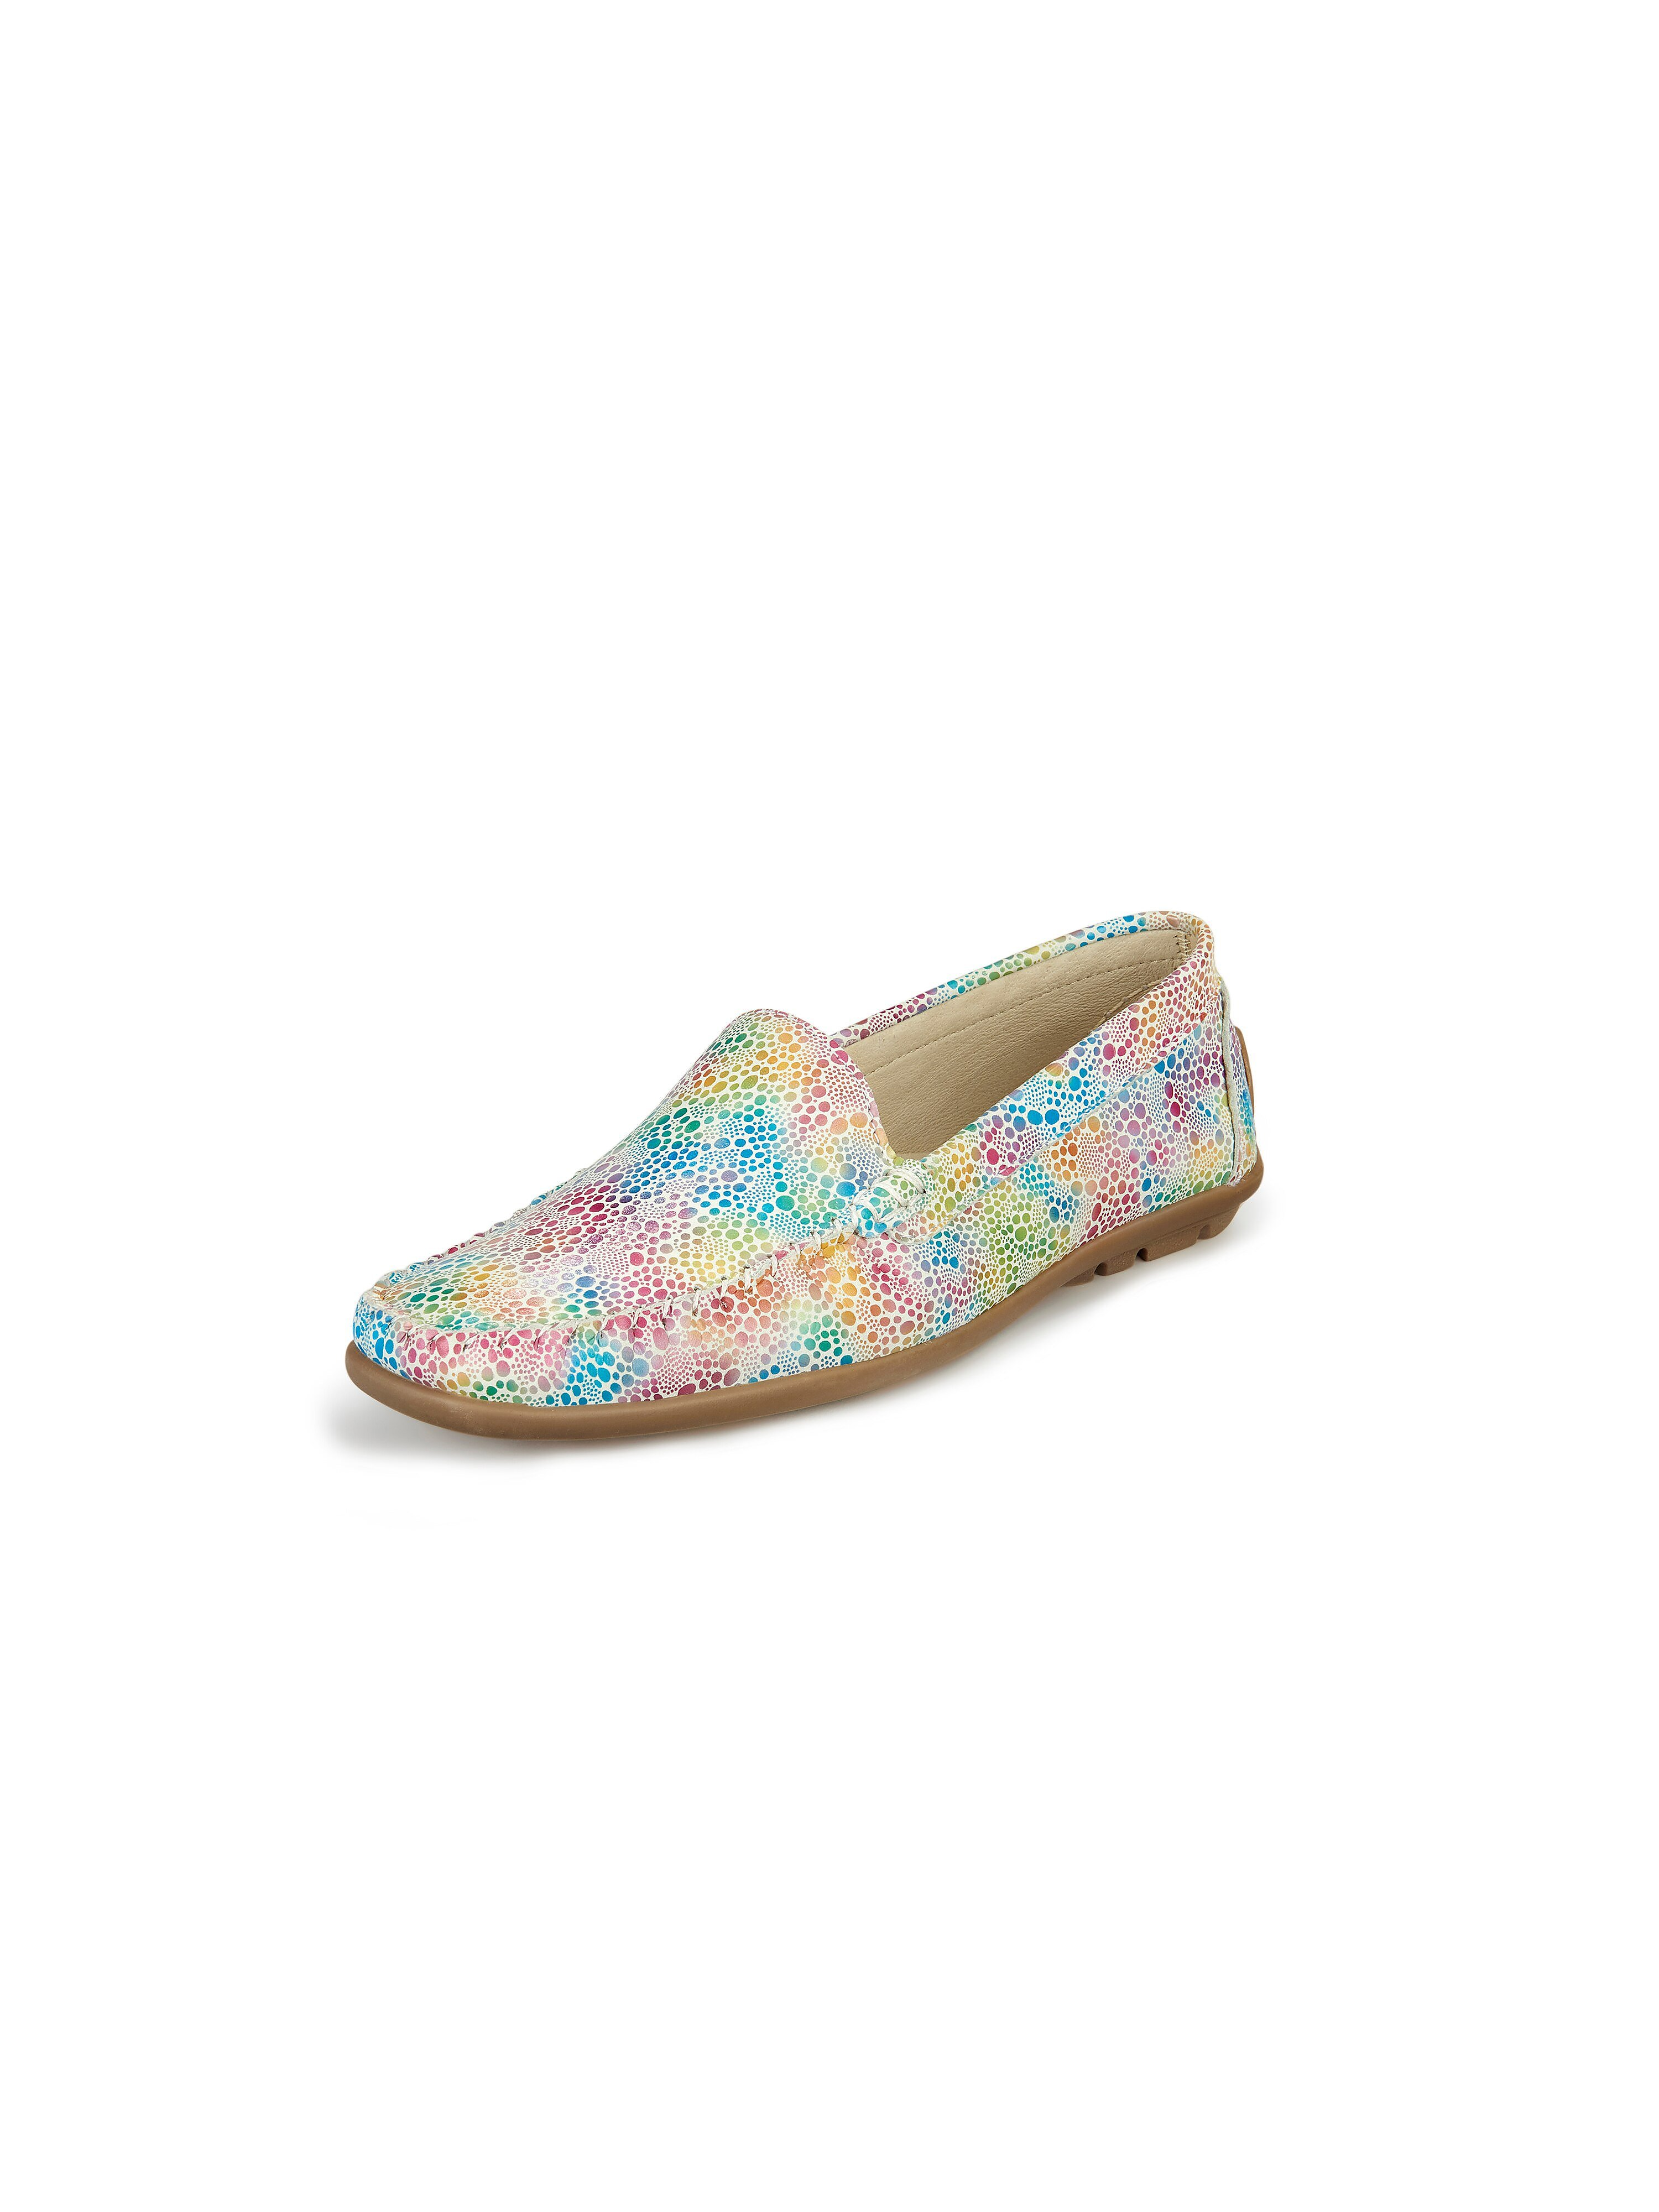 Les mocassins  Peter Hahn multicolore taille 38